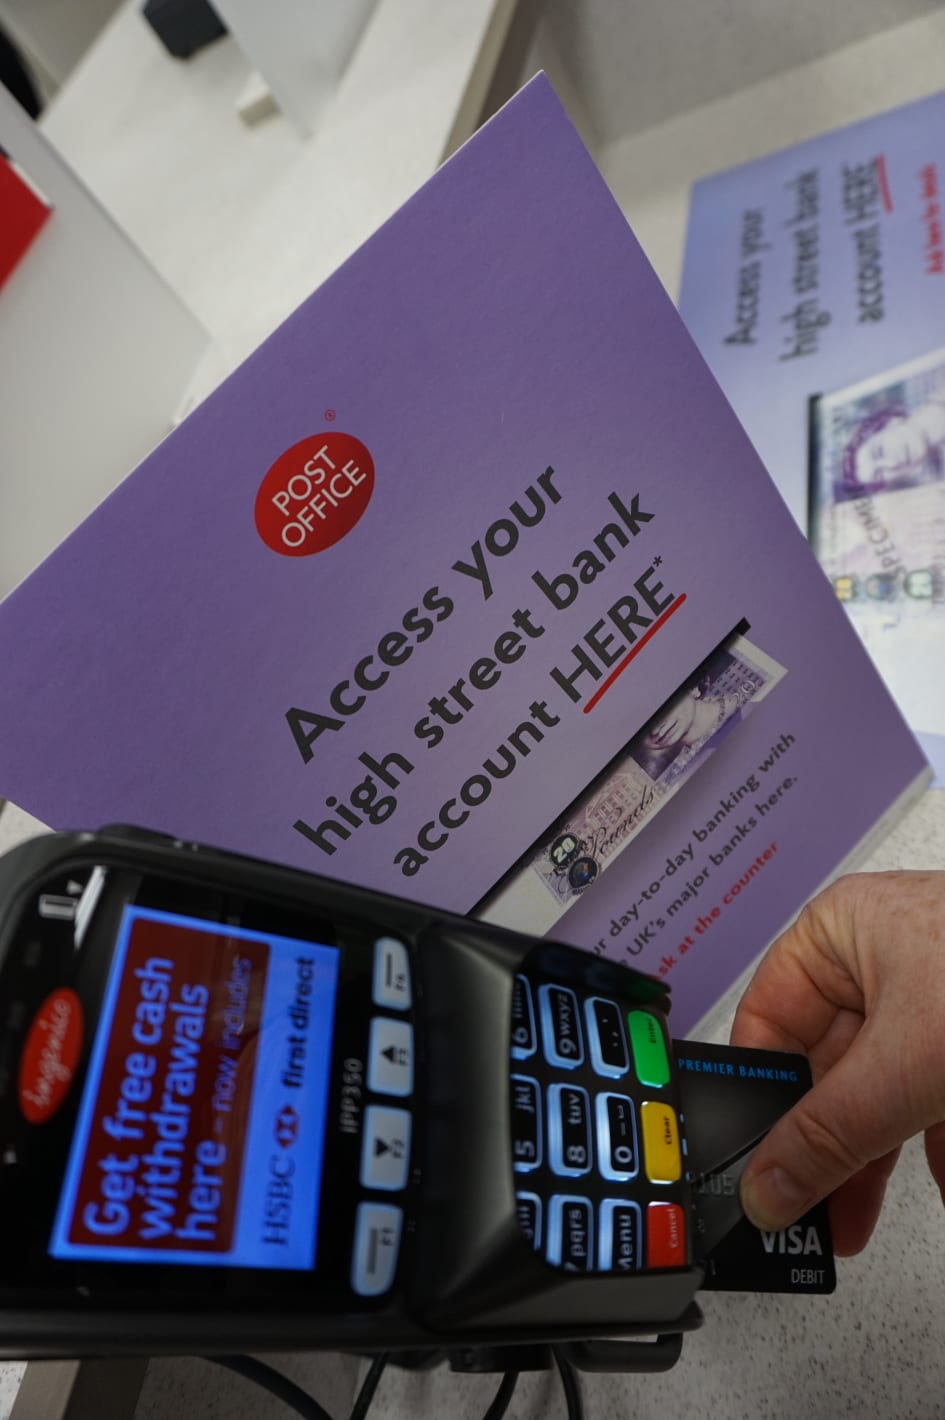 Post Office and UK Banks' partnership secure access to local